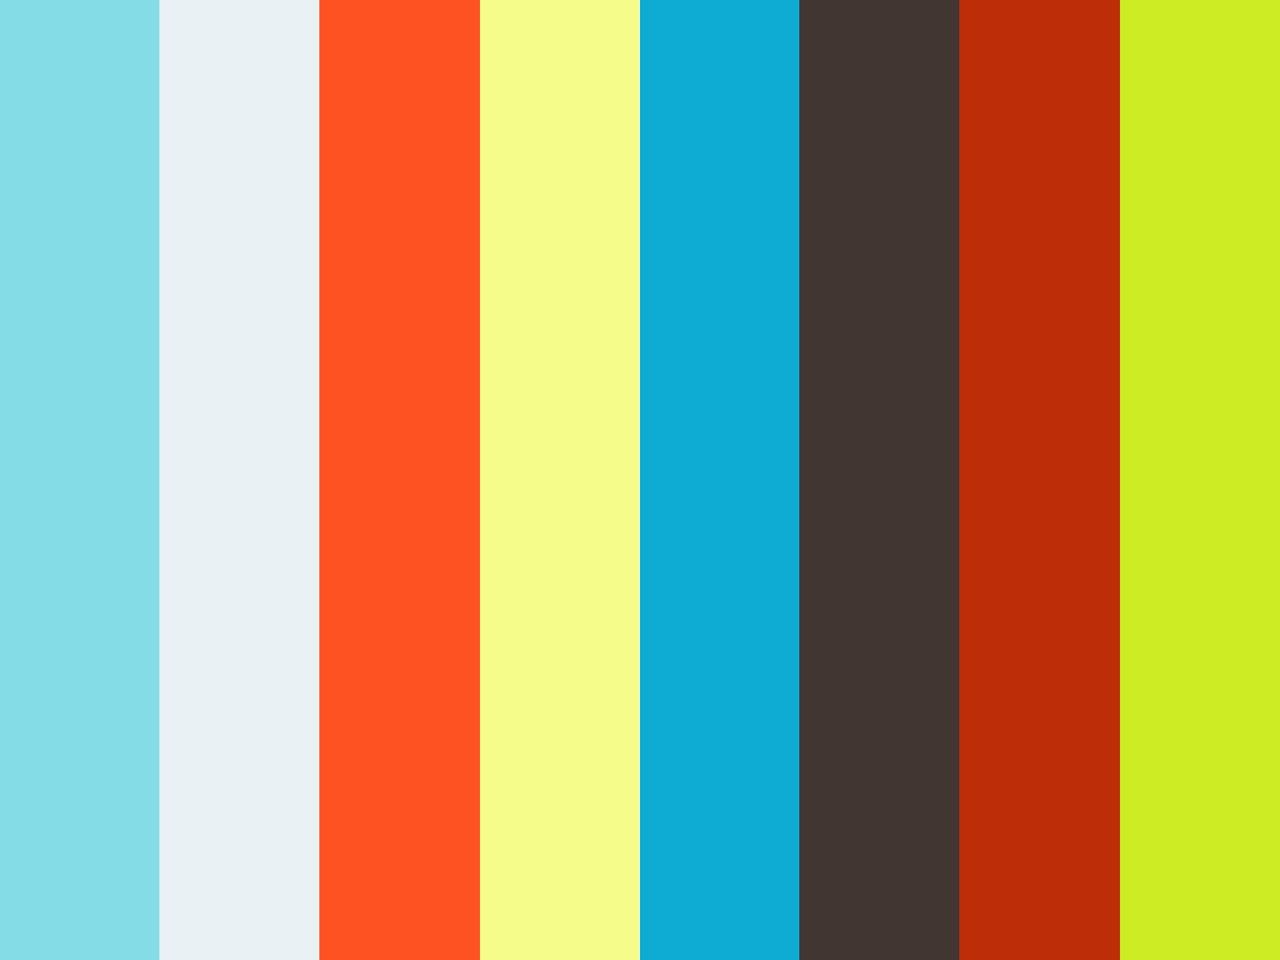 Alan's motorcycle